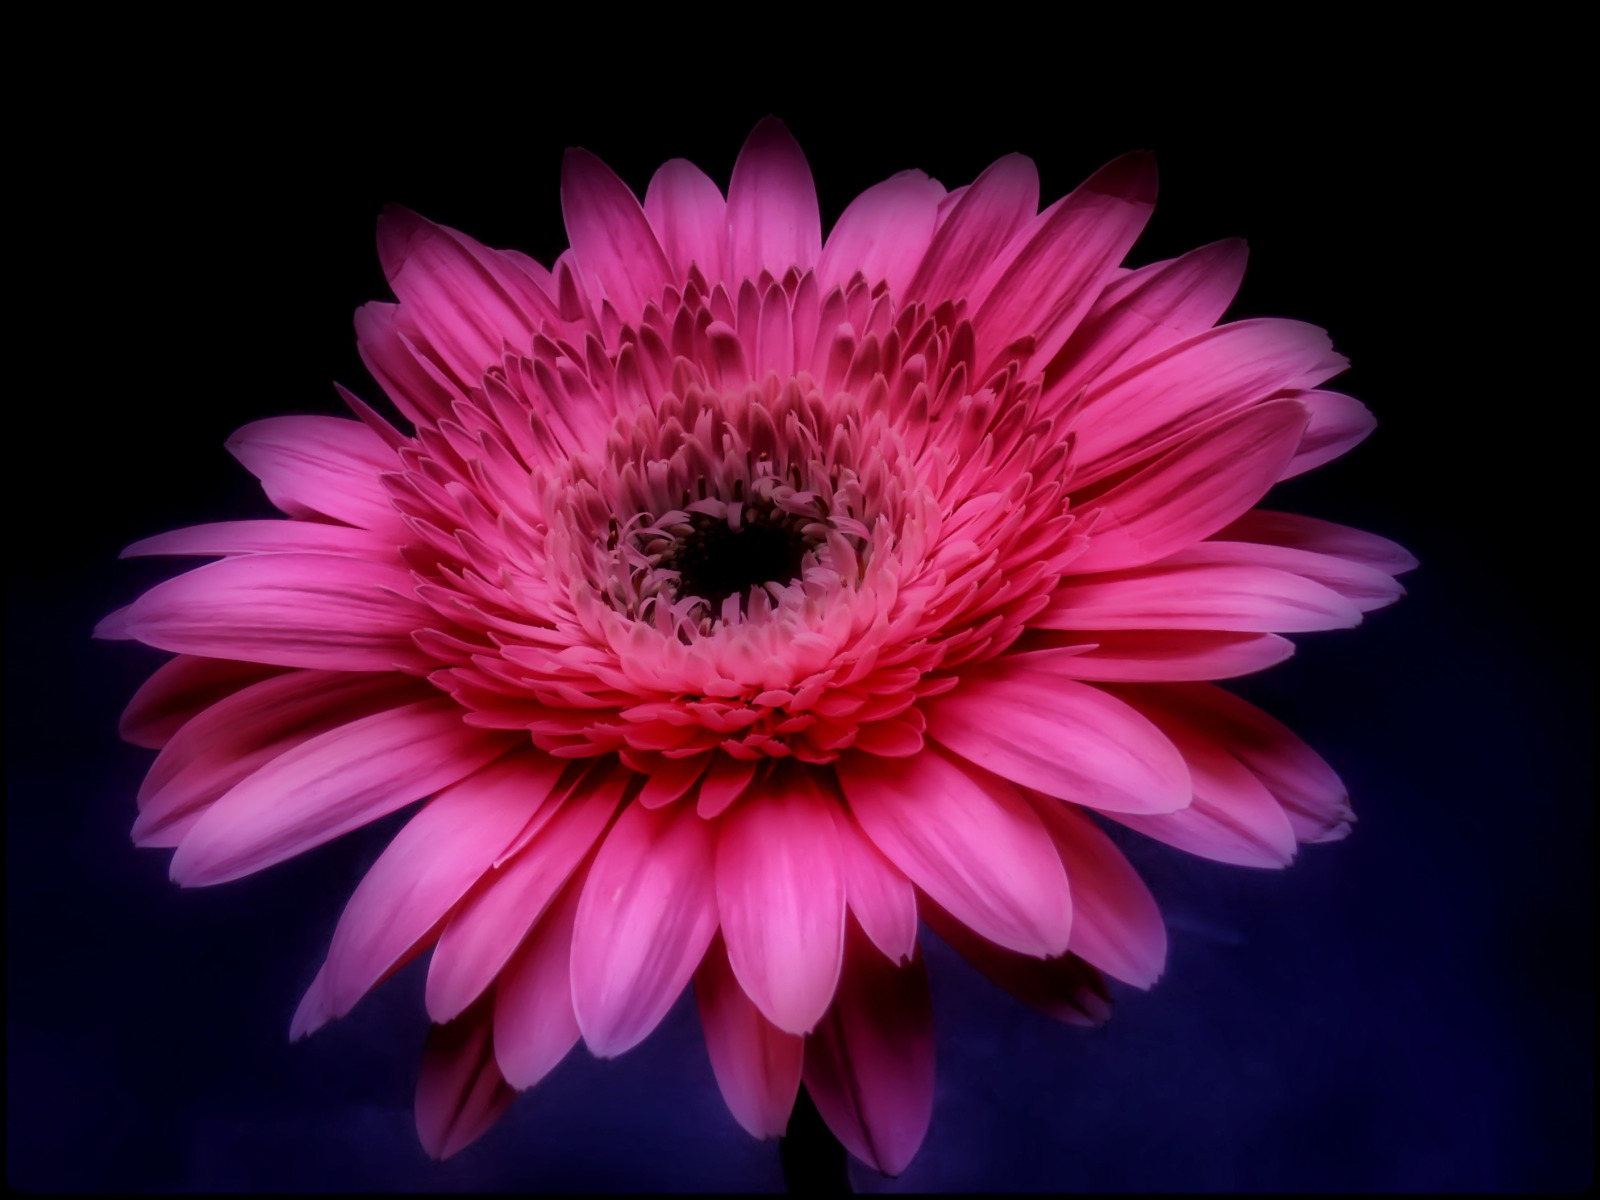 Pink Gerbera Daisy in The Darkness Widescreen Wallpaper Wide